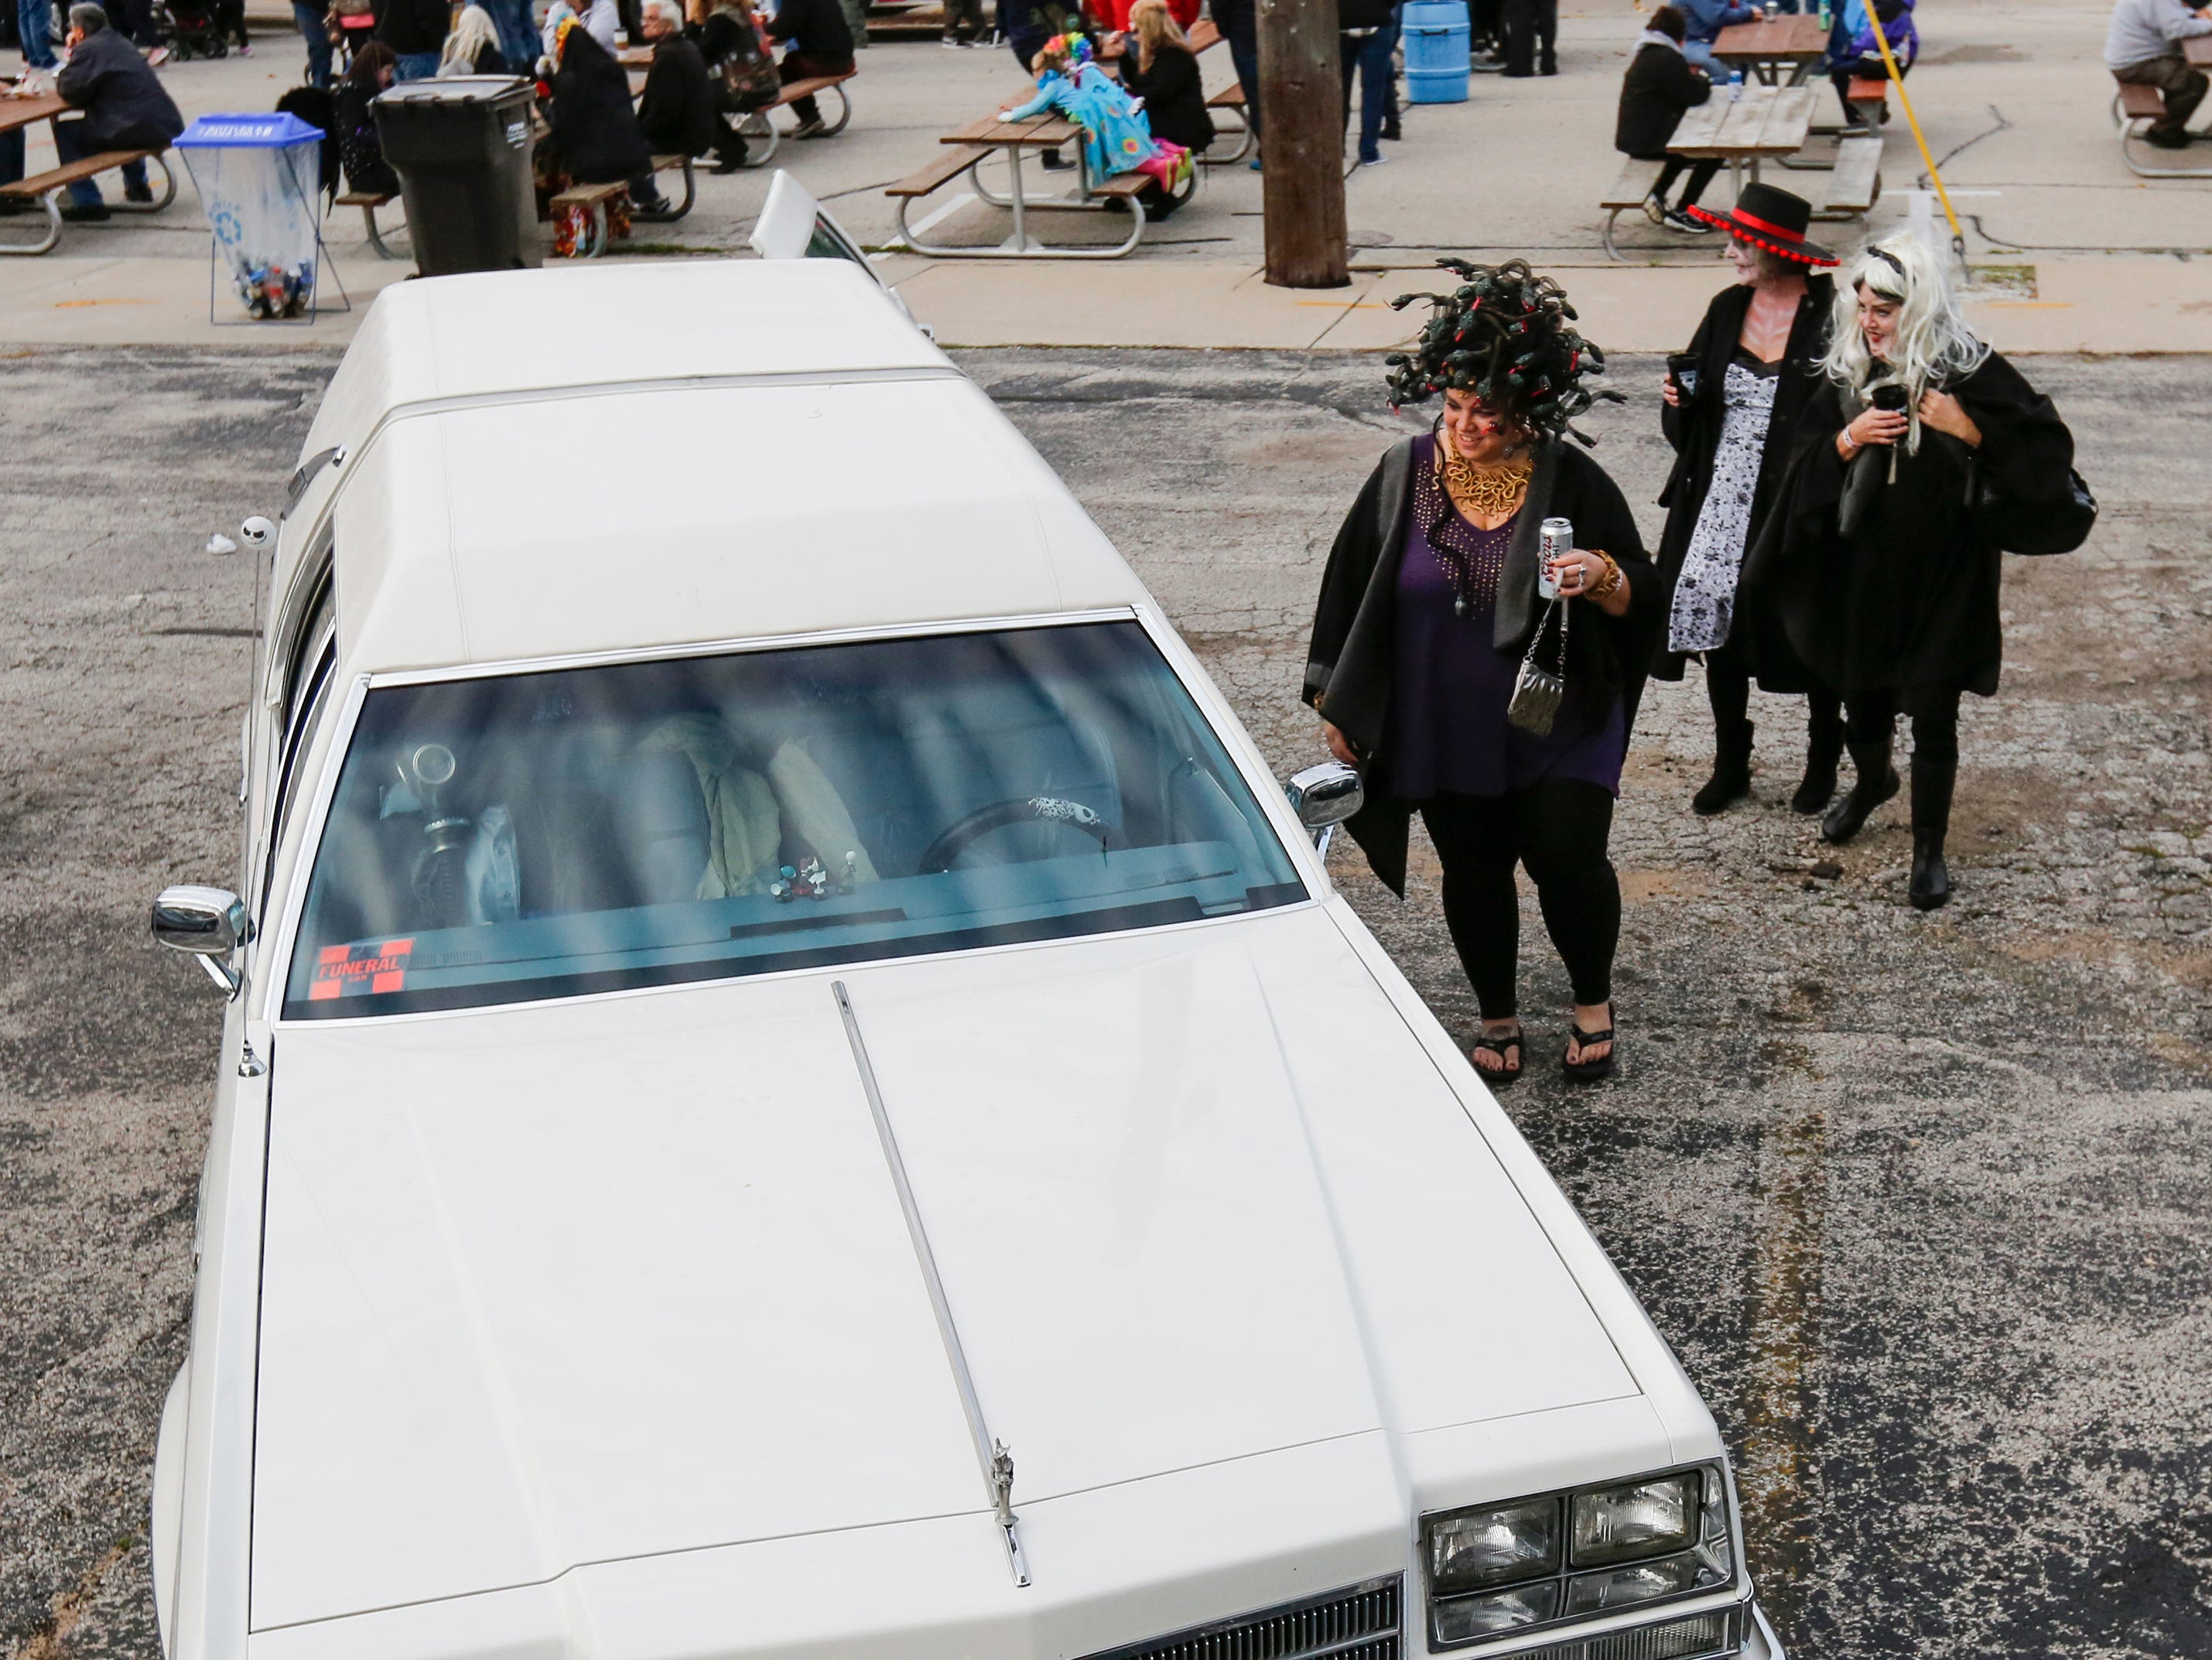 People look at a hearse on display during Windigo Fest on Saturday, Oct. 6, 2018, in Manitowoc, Wis.